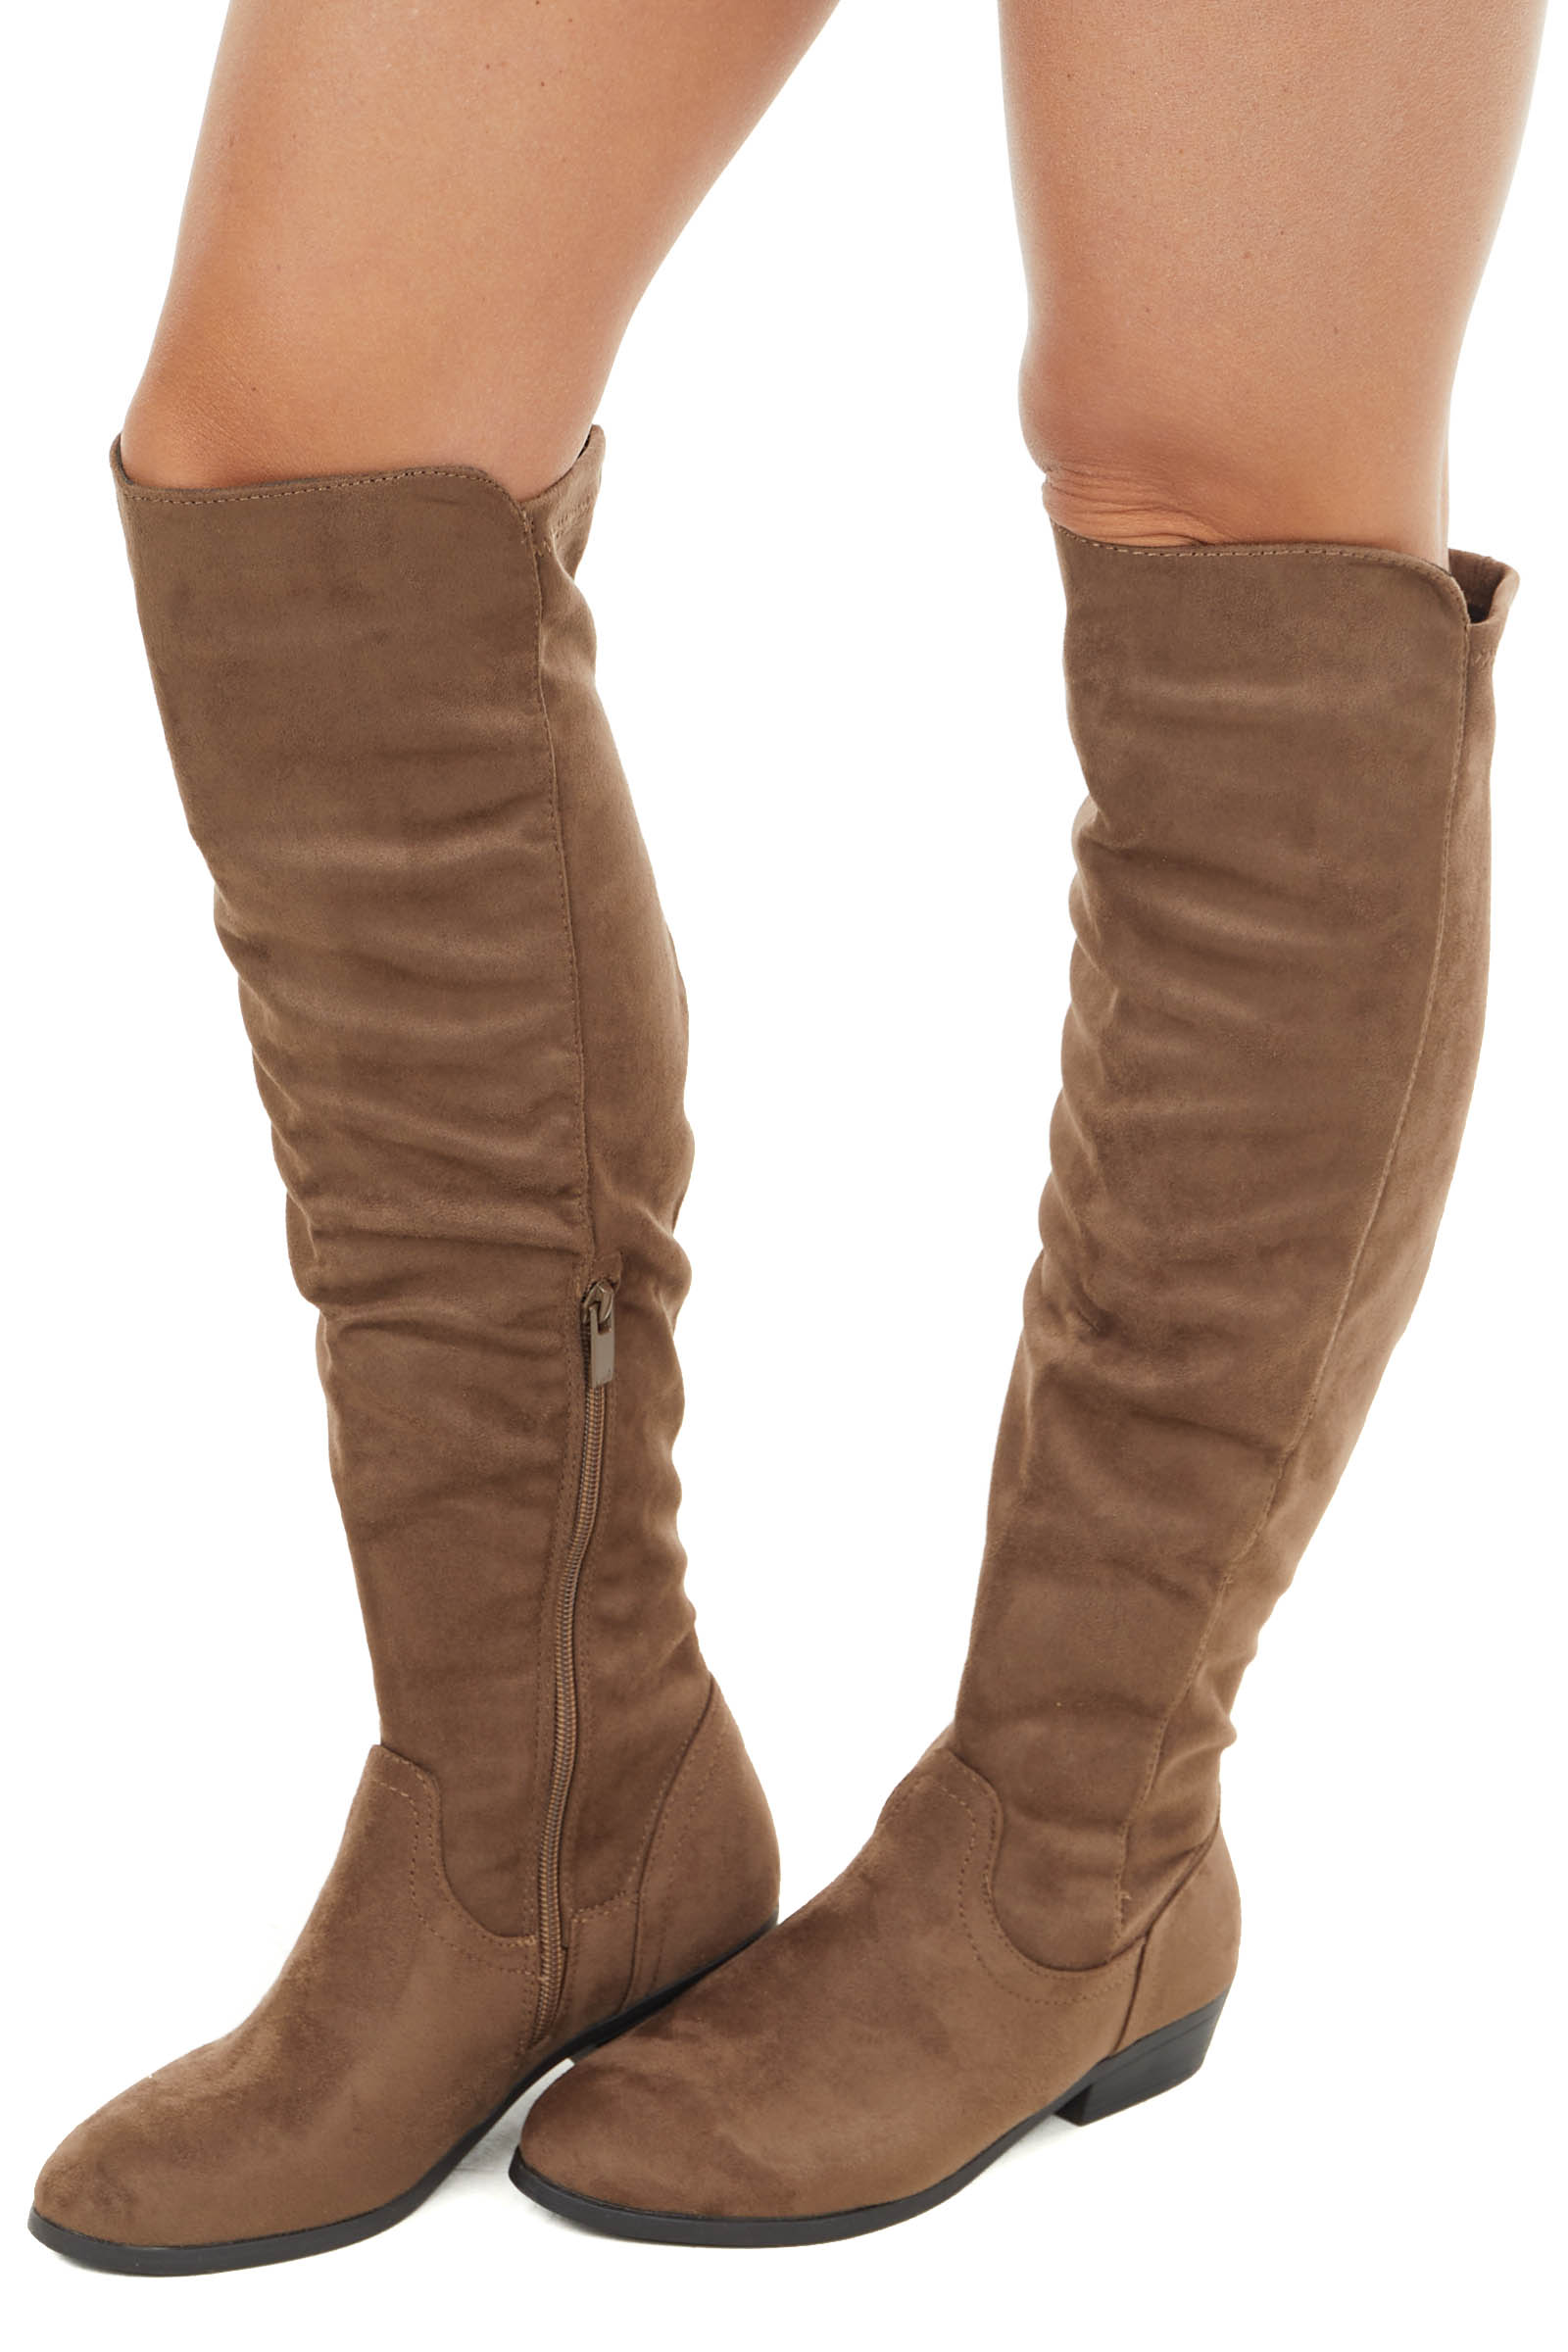 Taupe Faux Suede Knee High Boots with Small Heel